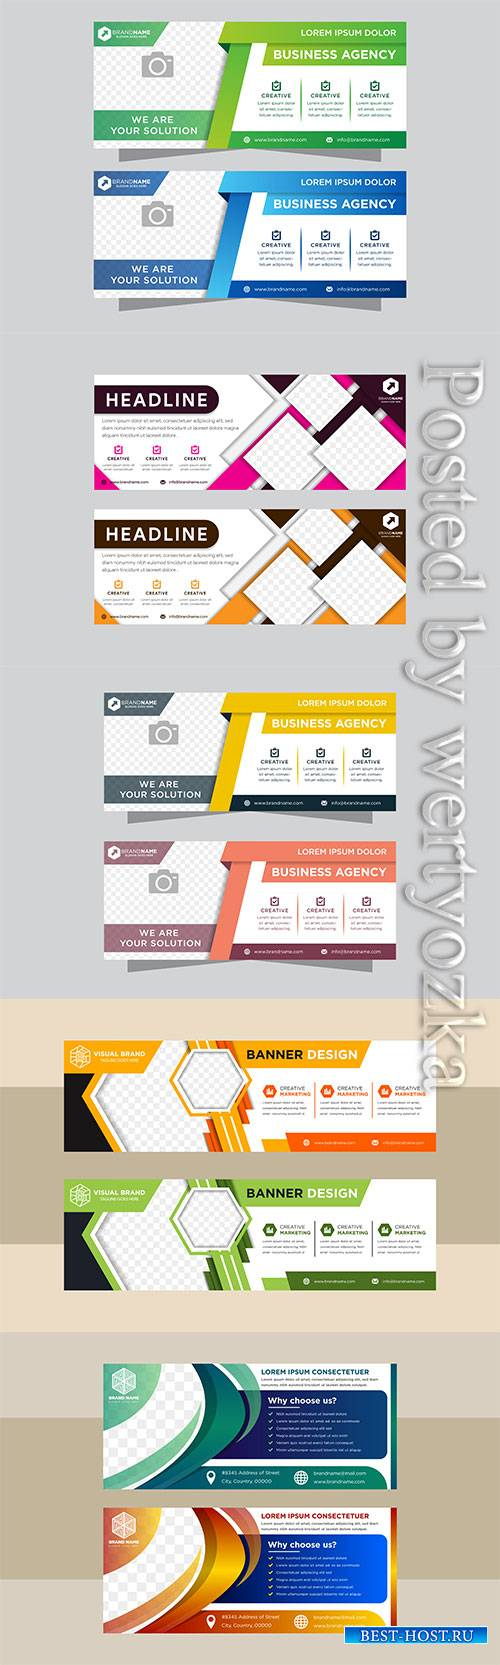 Abstract vector banner design web template